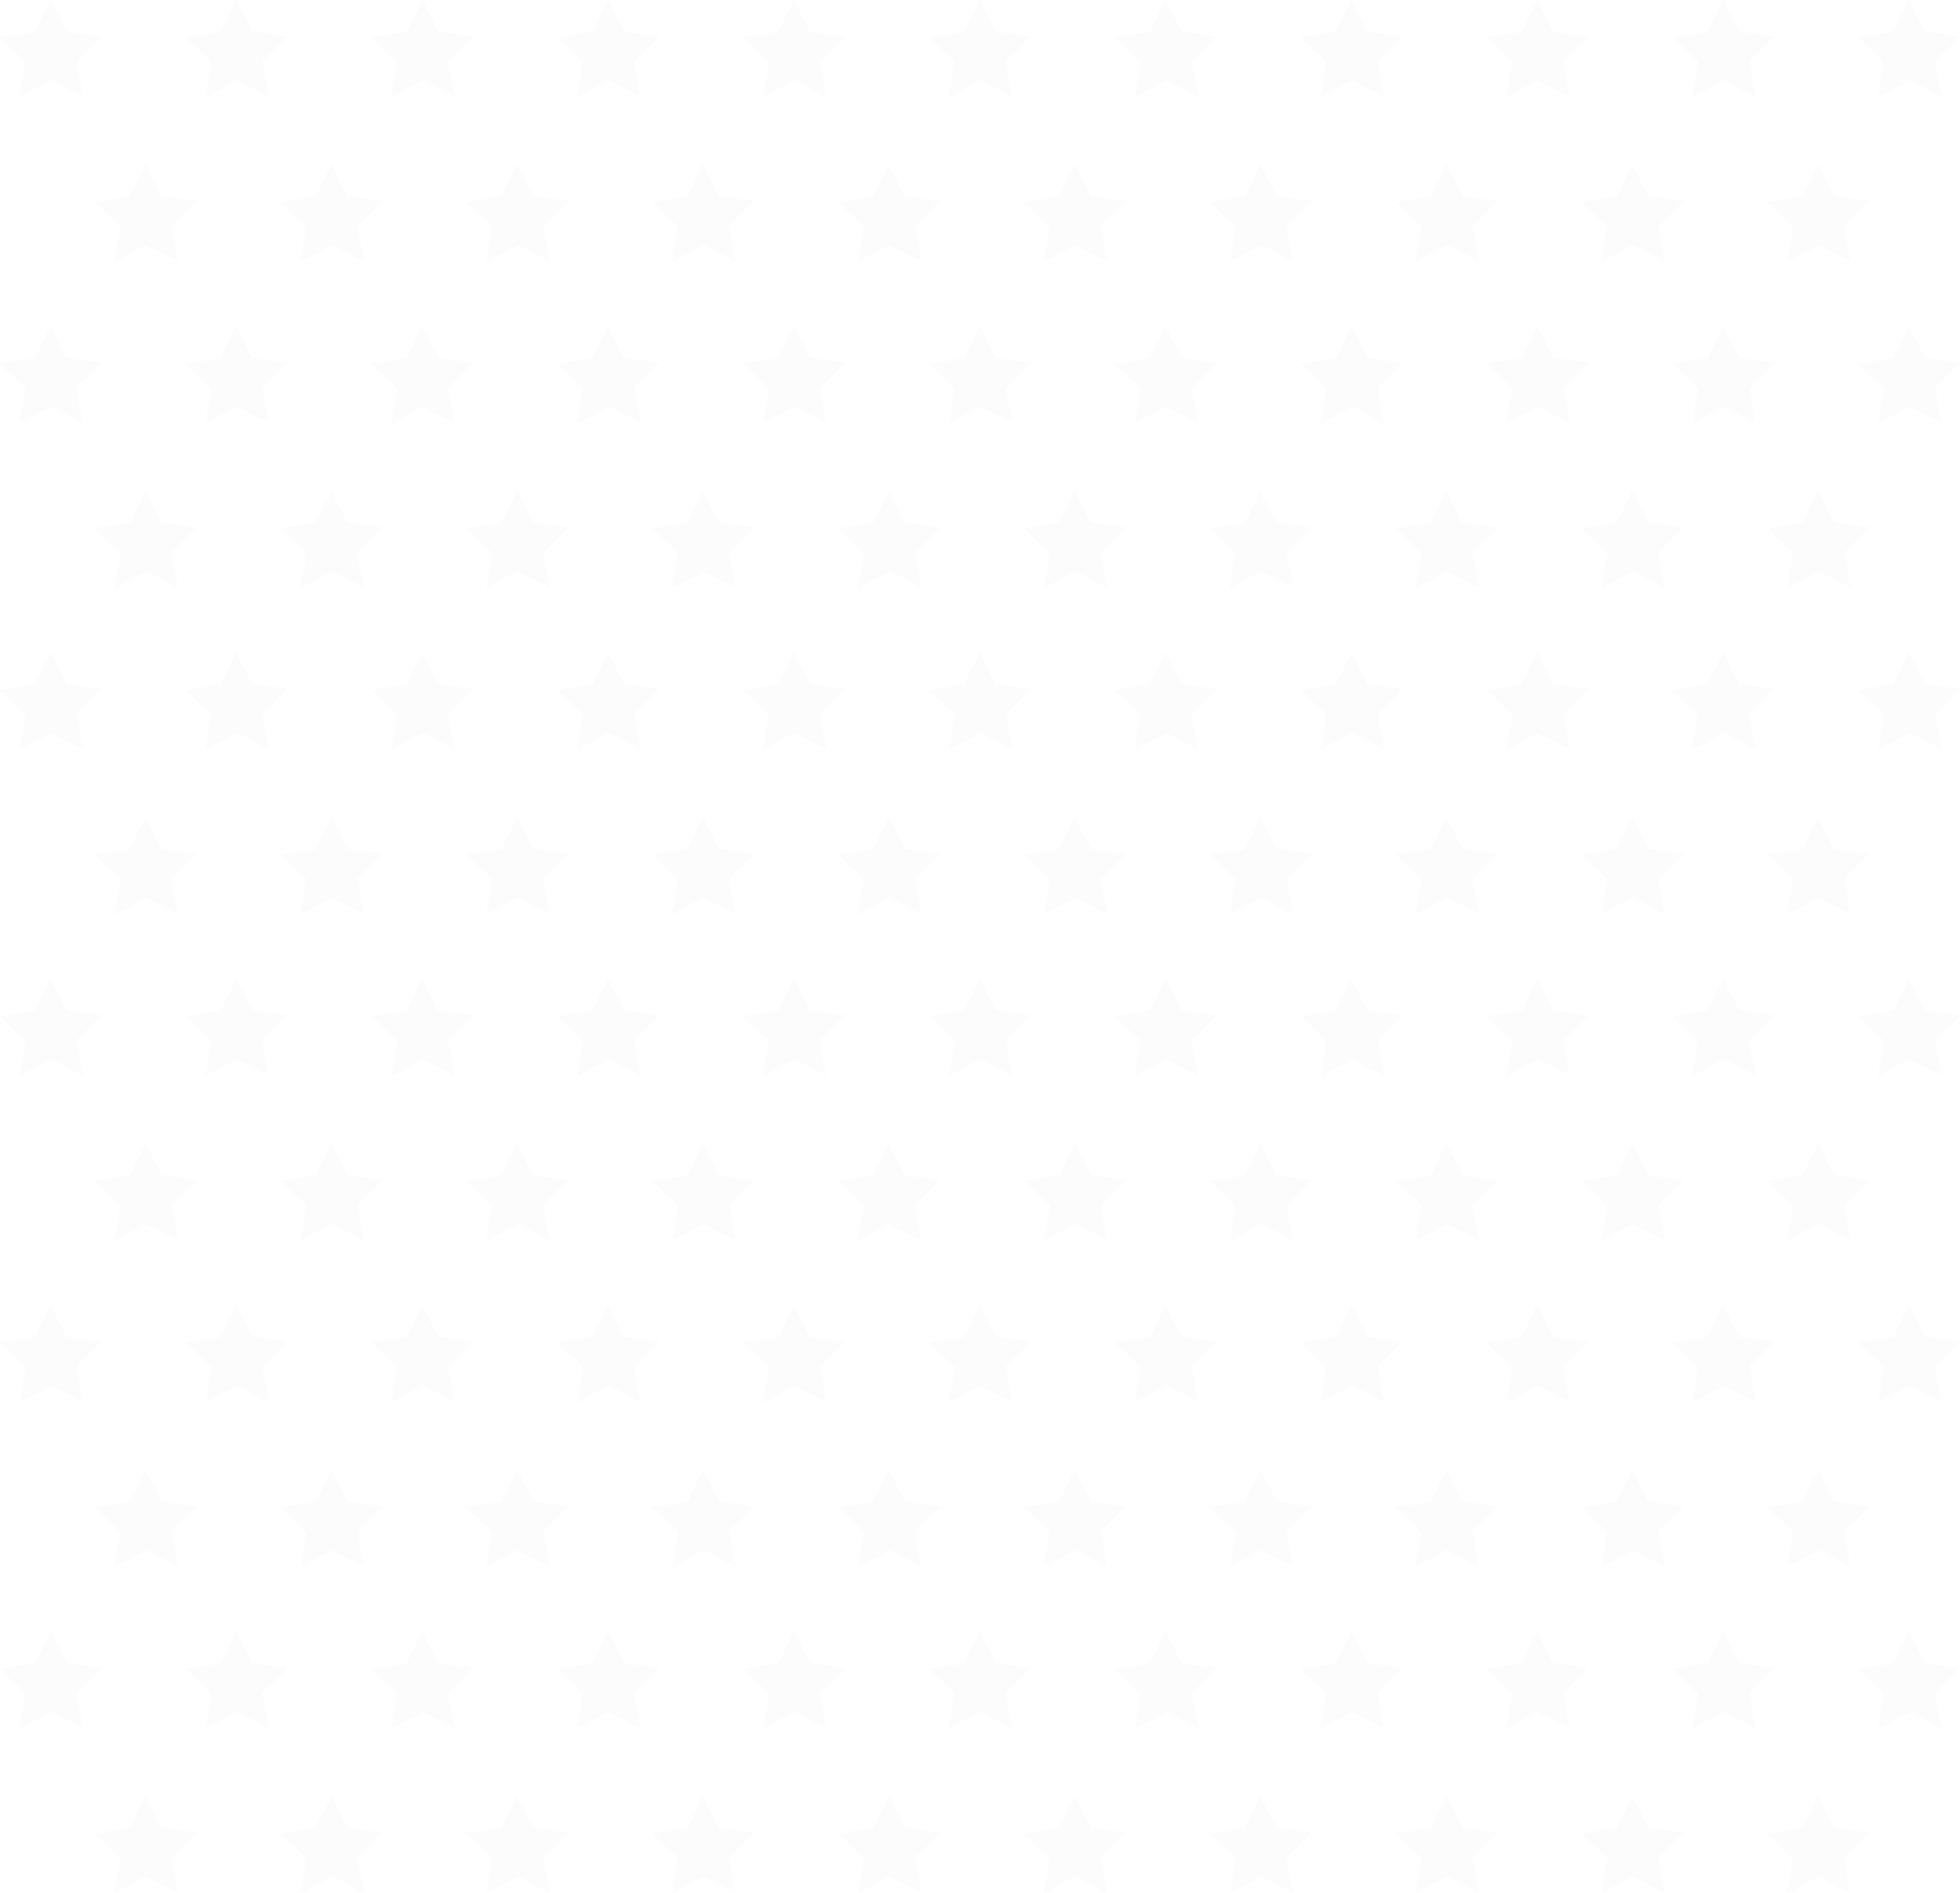 Star background clipart free clip art black and white download Stars Background Effect Transparent PNG Clip Art | Gallery ... clip art black and white download